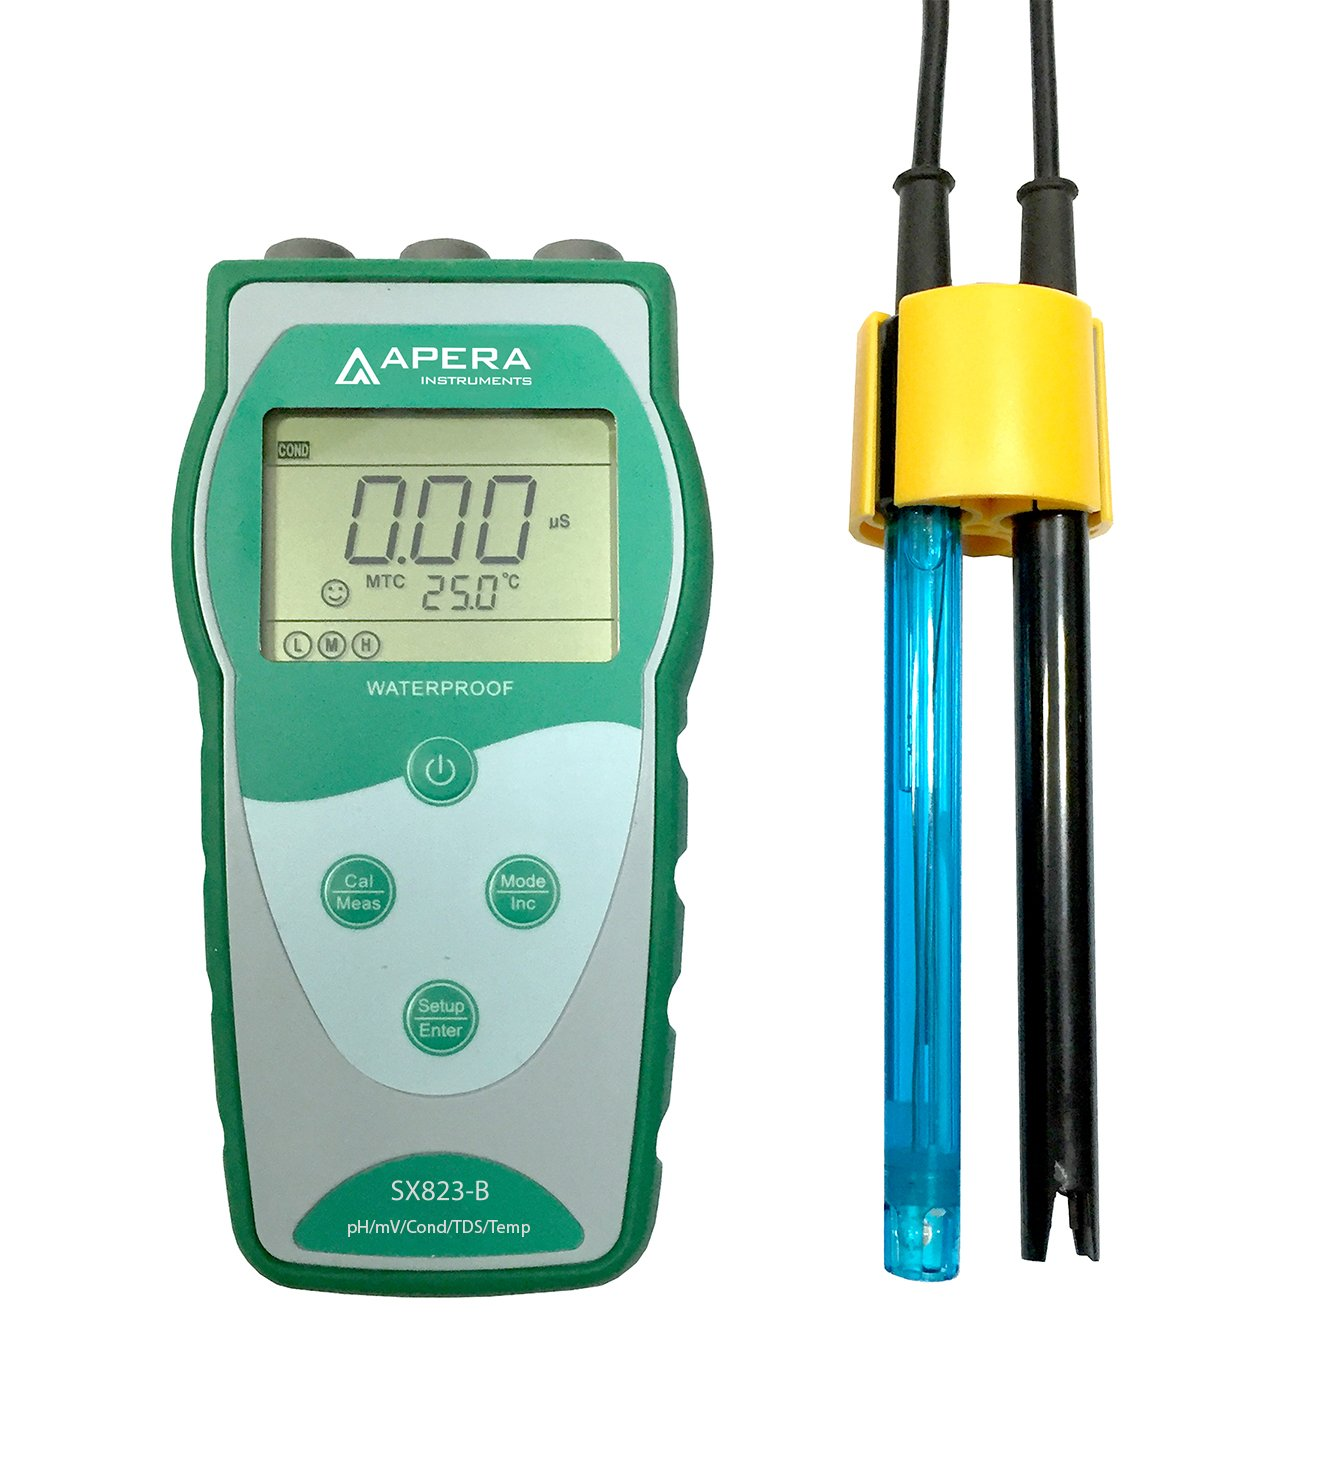 Apera Instruments SX823-B Portable Multi-Parameter Meter (pH/EC/TDS/Temp.), Accuracy: ±0.01 pH; ±1% F.S, Testing pH/Conductivity/TDS/Temperature simultaneously by Apera Instruments, LLC